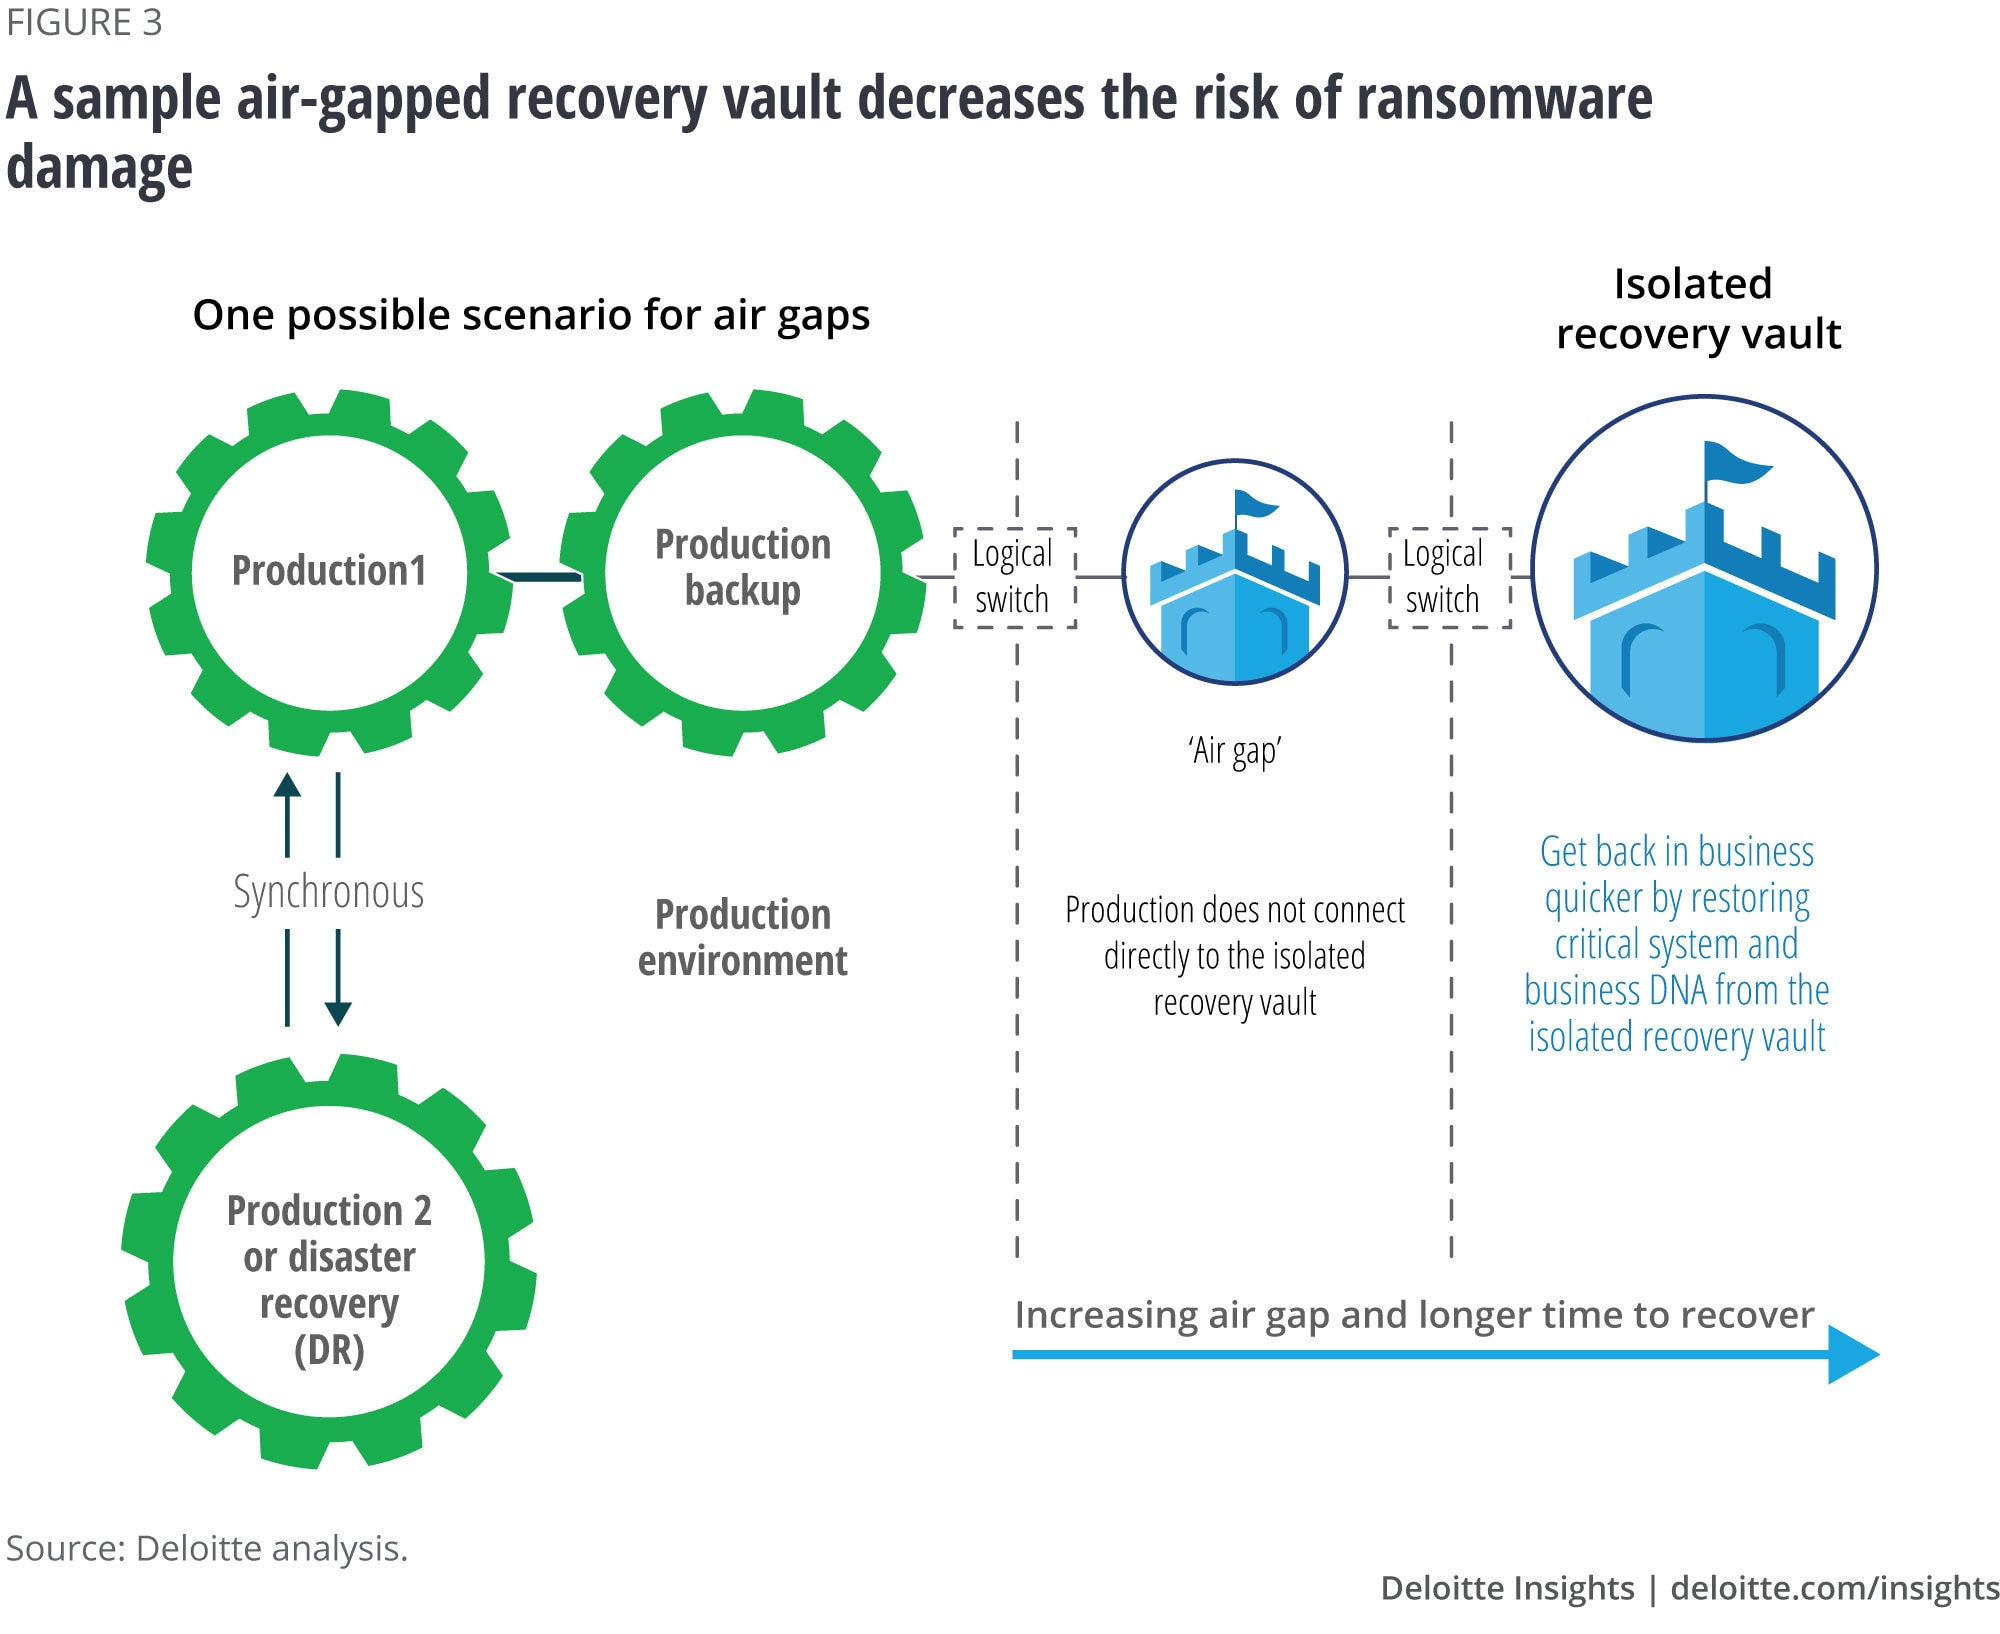 A sample air-gapped recovery vault decreases the risk of ransomware damage